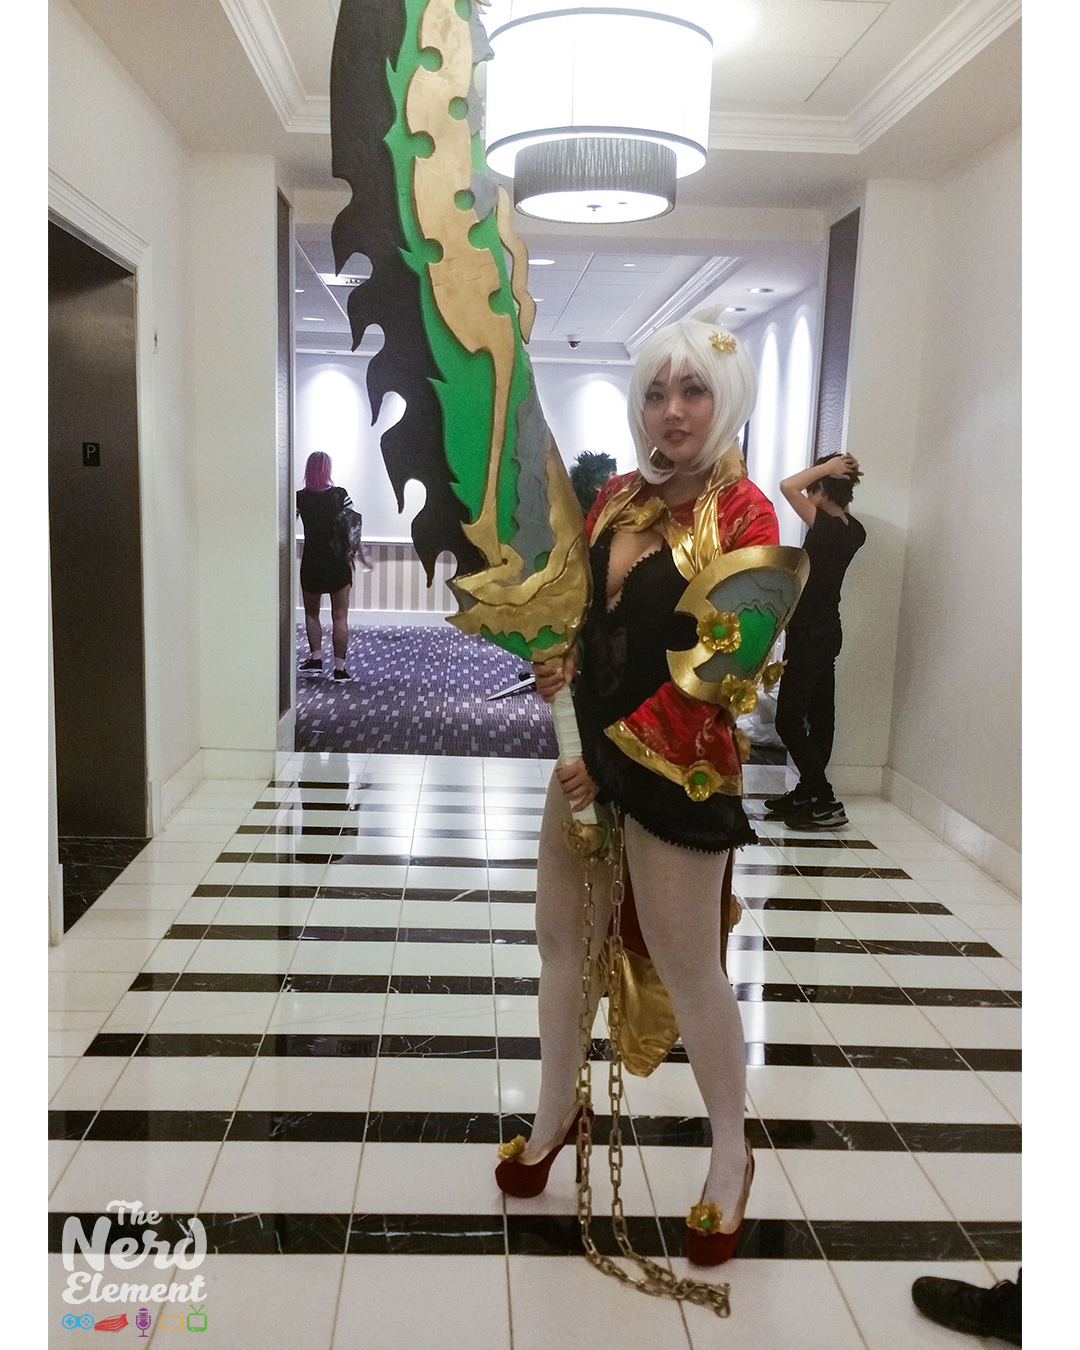 Riven (Dragonblade skin) - League of Legends Cosplayer: unknown